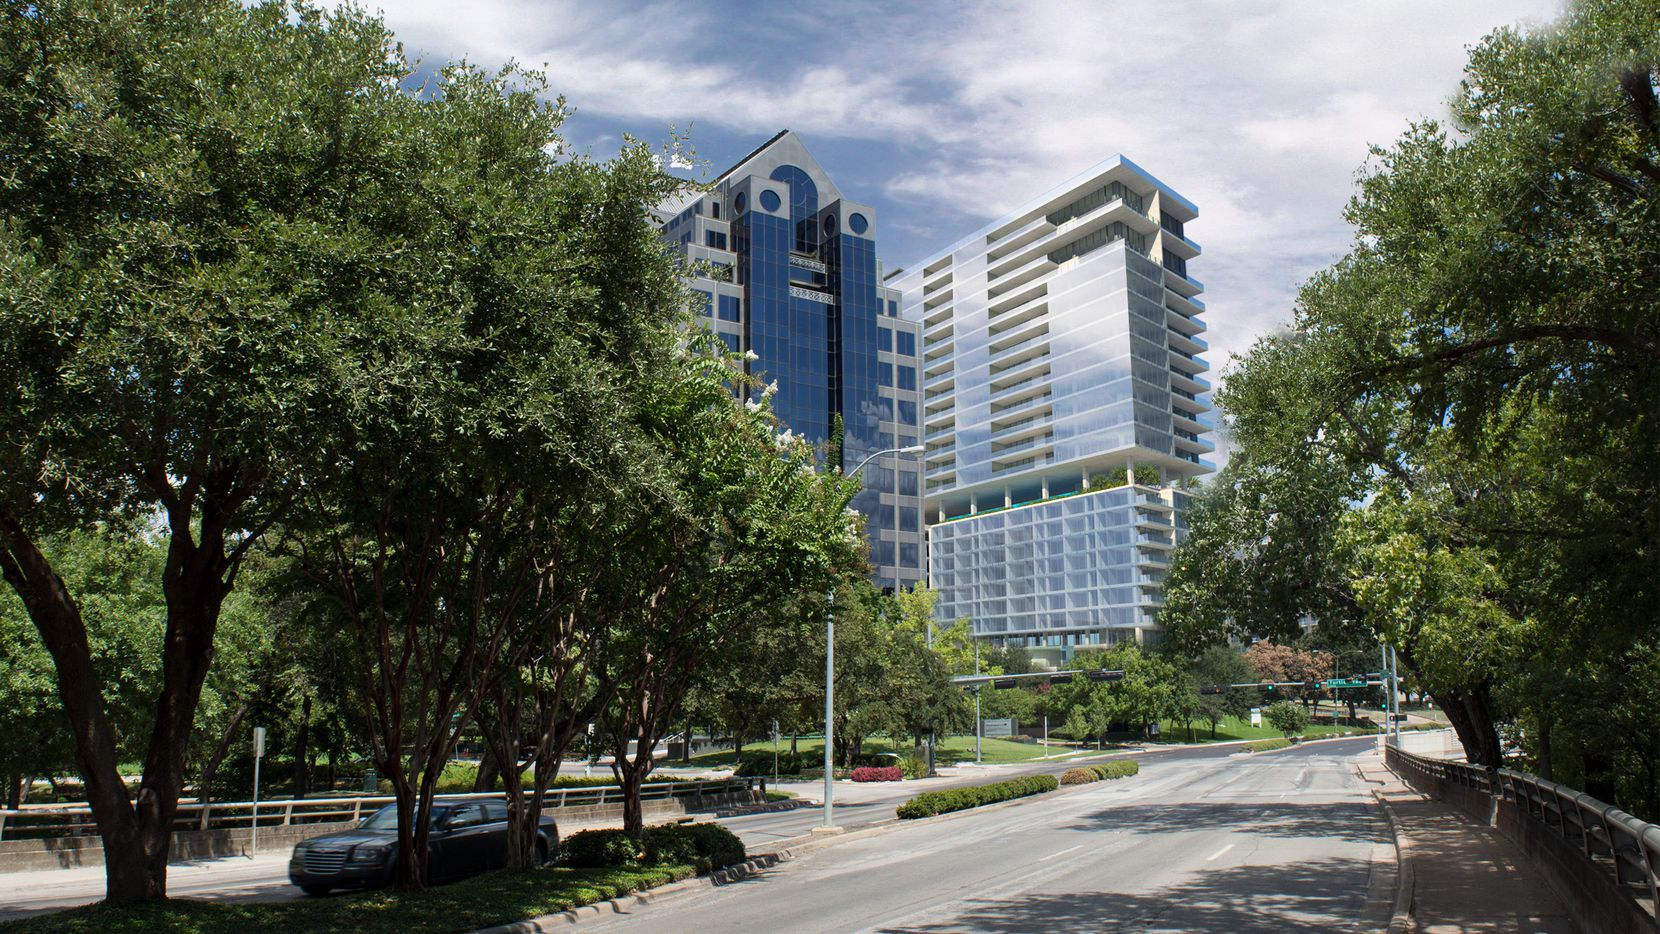 Madison Realty Capital provided more than $30 million in funding for the new Mandarin Oriental Hotel and Condos in Dallas.